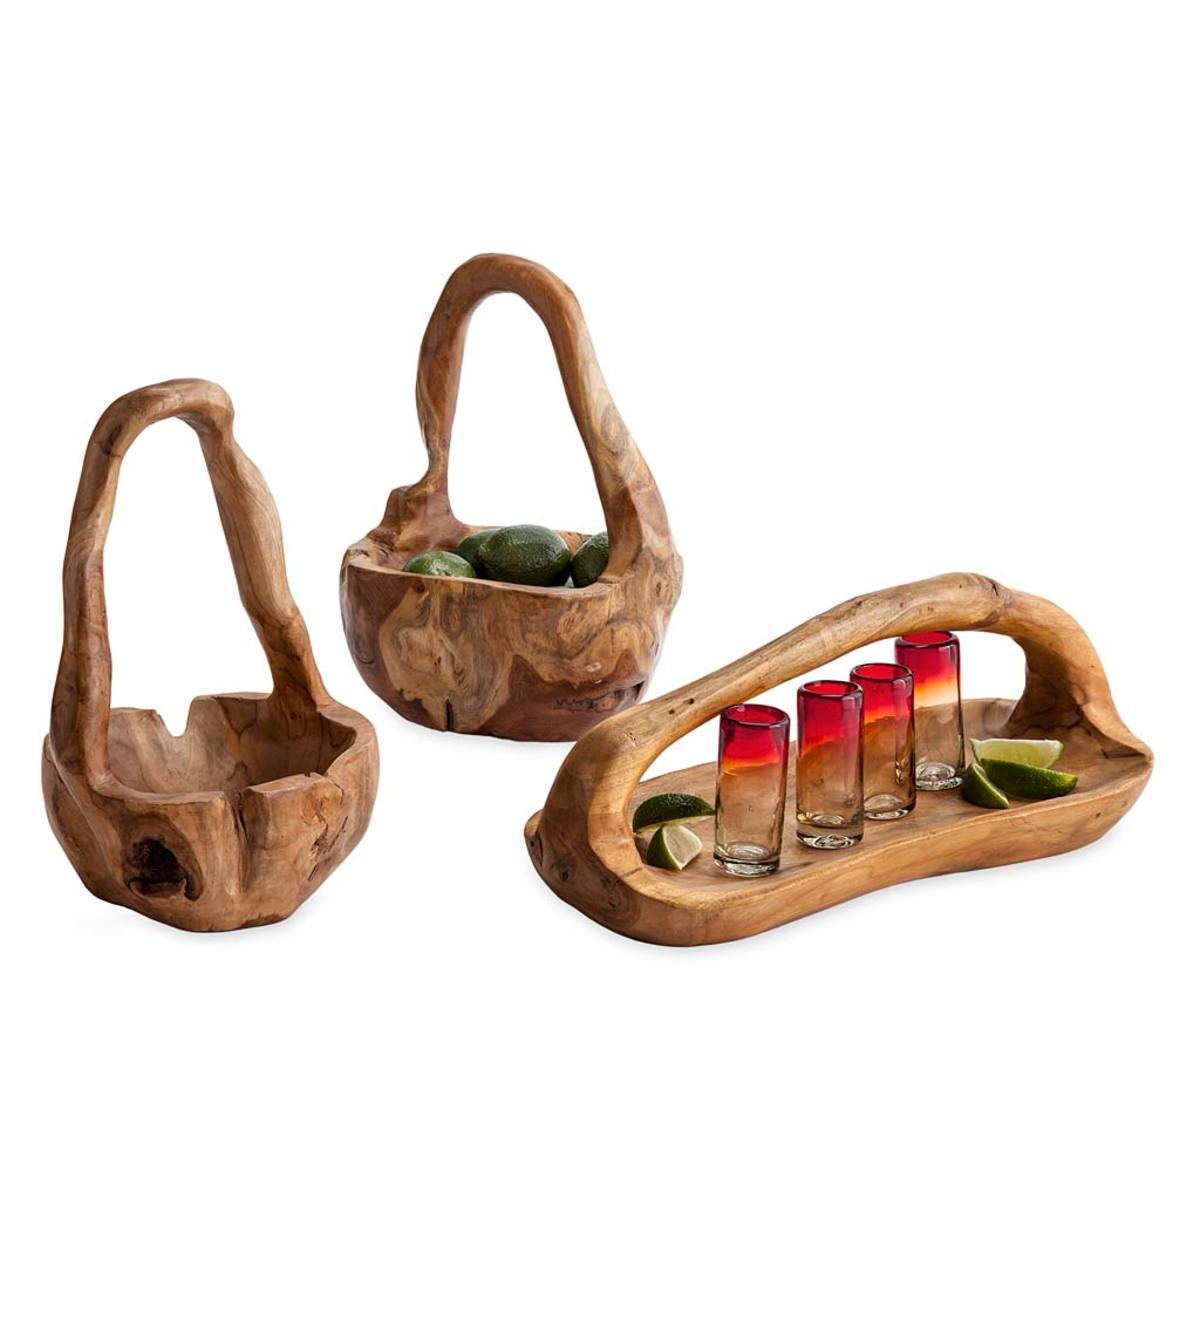 Teak Root of the Earth Handcrafted Baskets